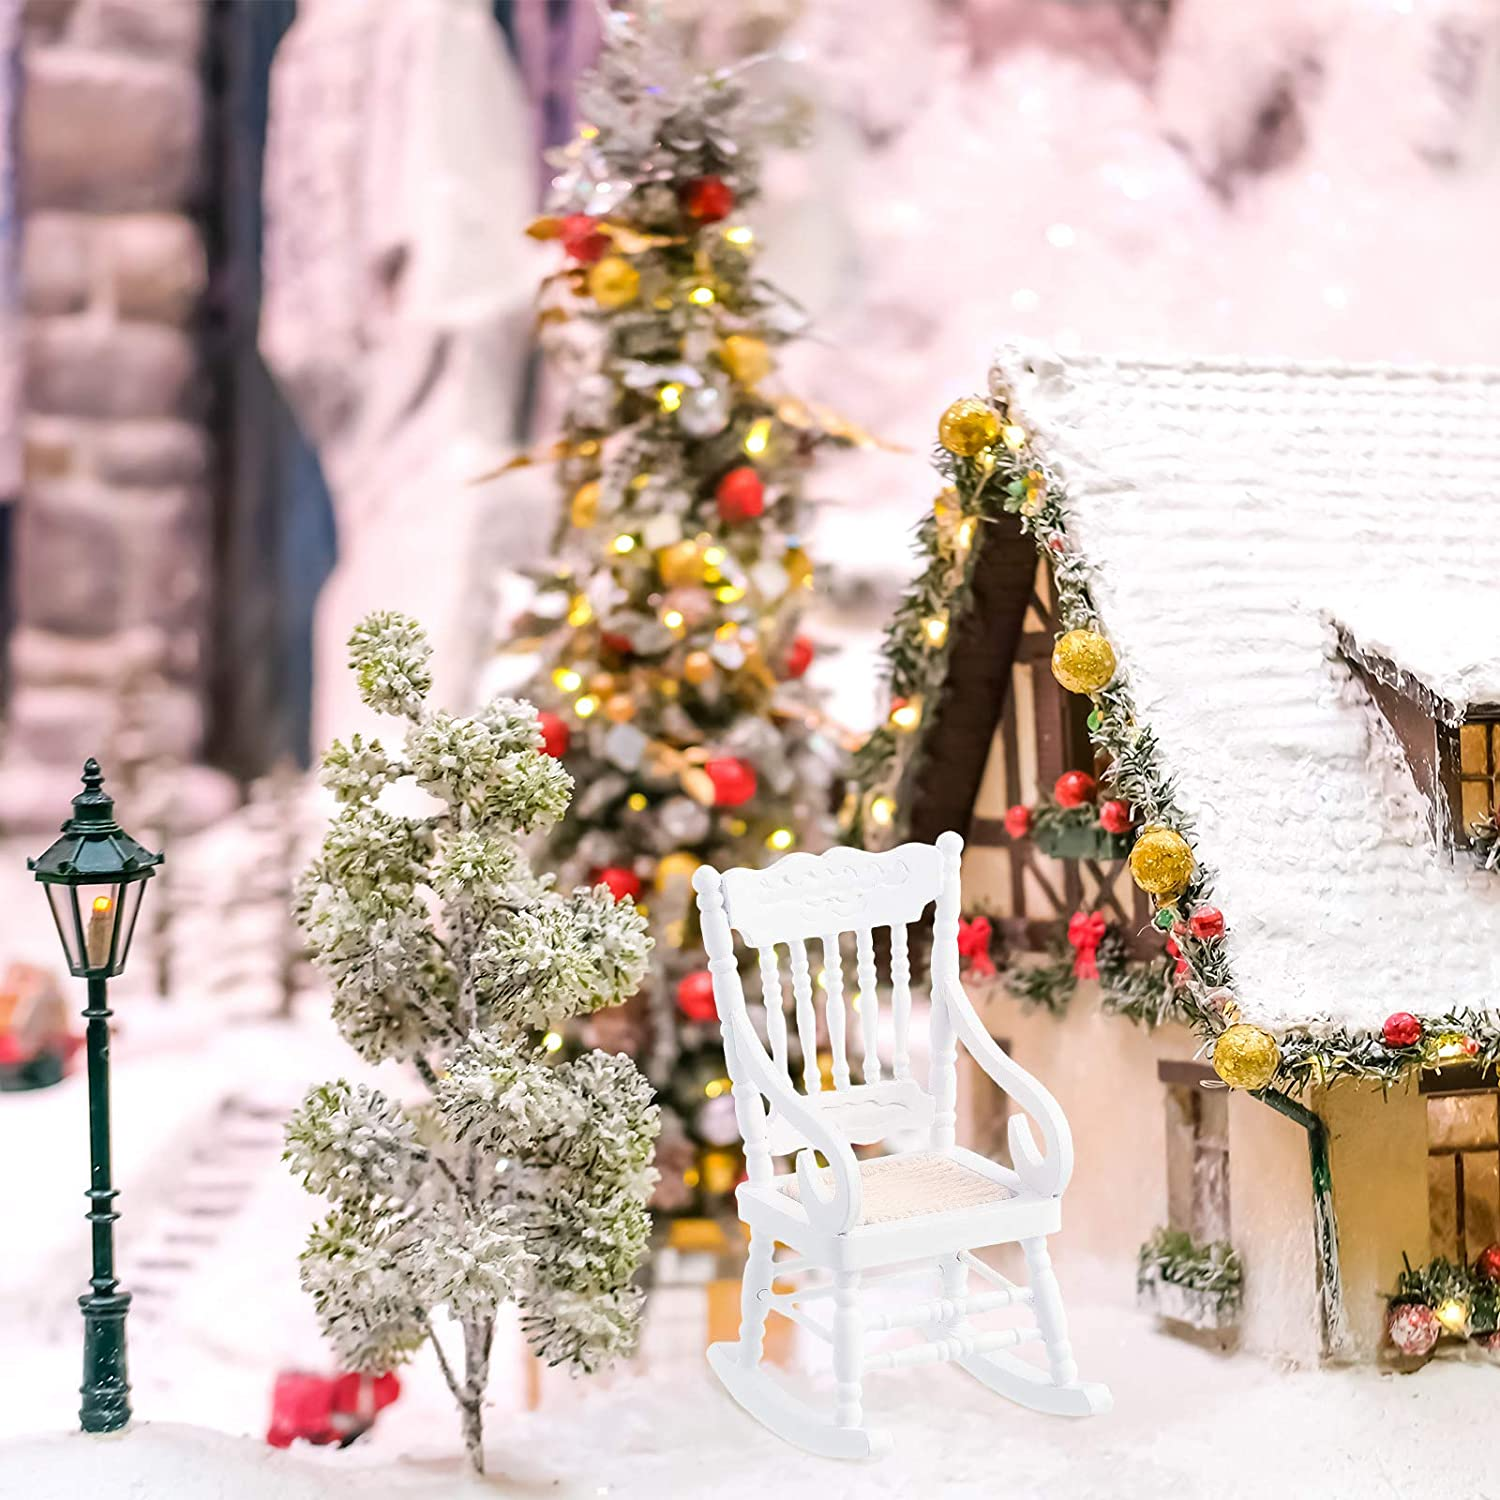 Jetec Doll House Wooden Chairs 1:12 Scale Christmas Dollhouse Model Chairs Mini Dollhouse Wooden Rocking Chairs for Dollhouse Decoration Favors